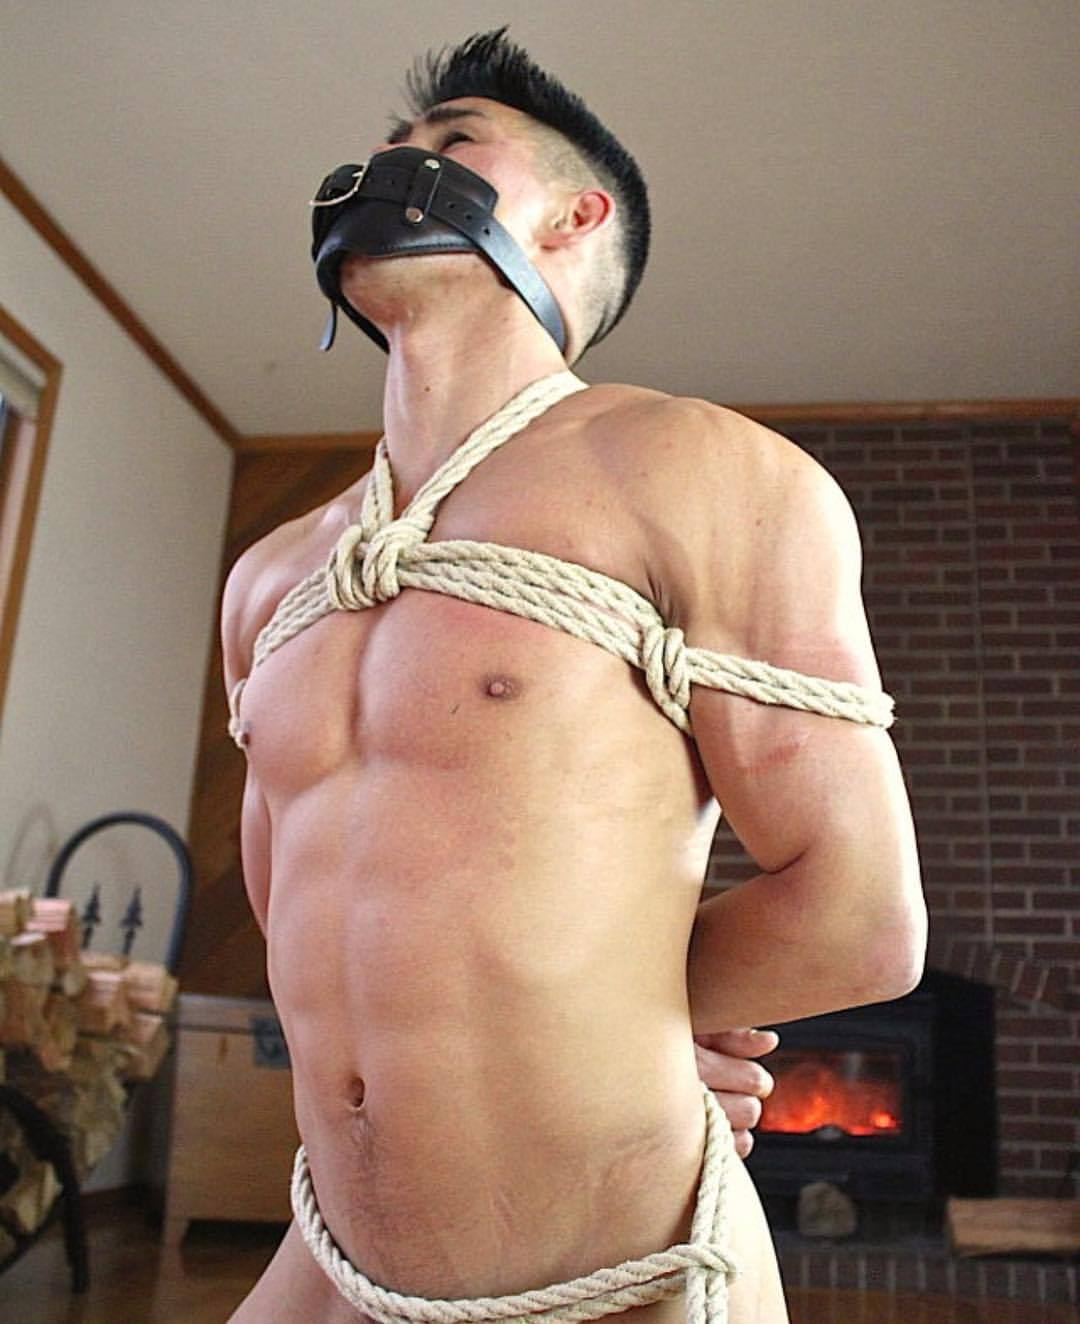 Viktoria diamond is tied up fully nude and oiled